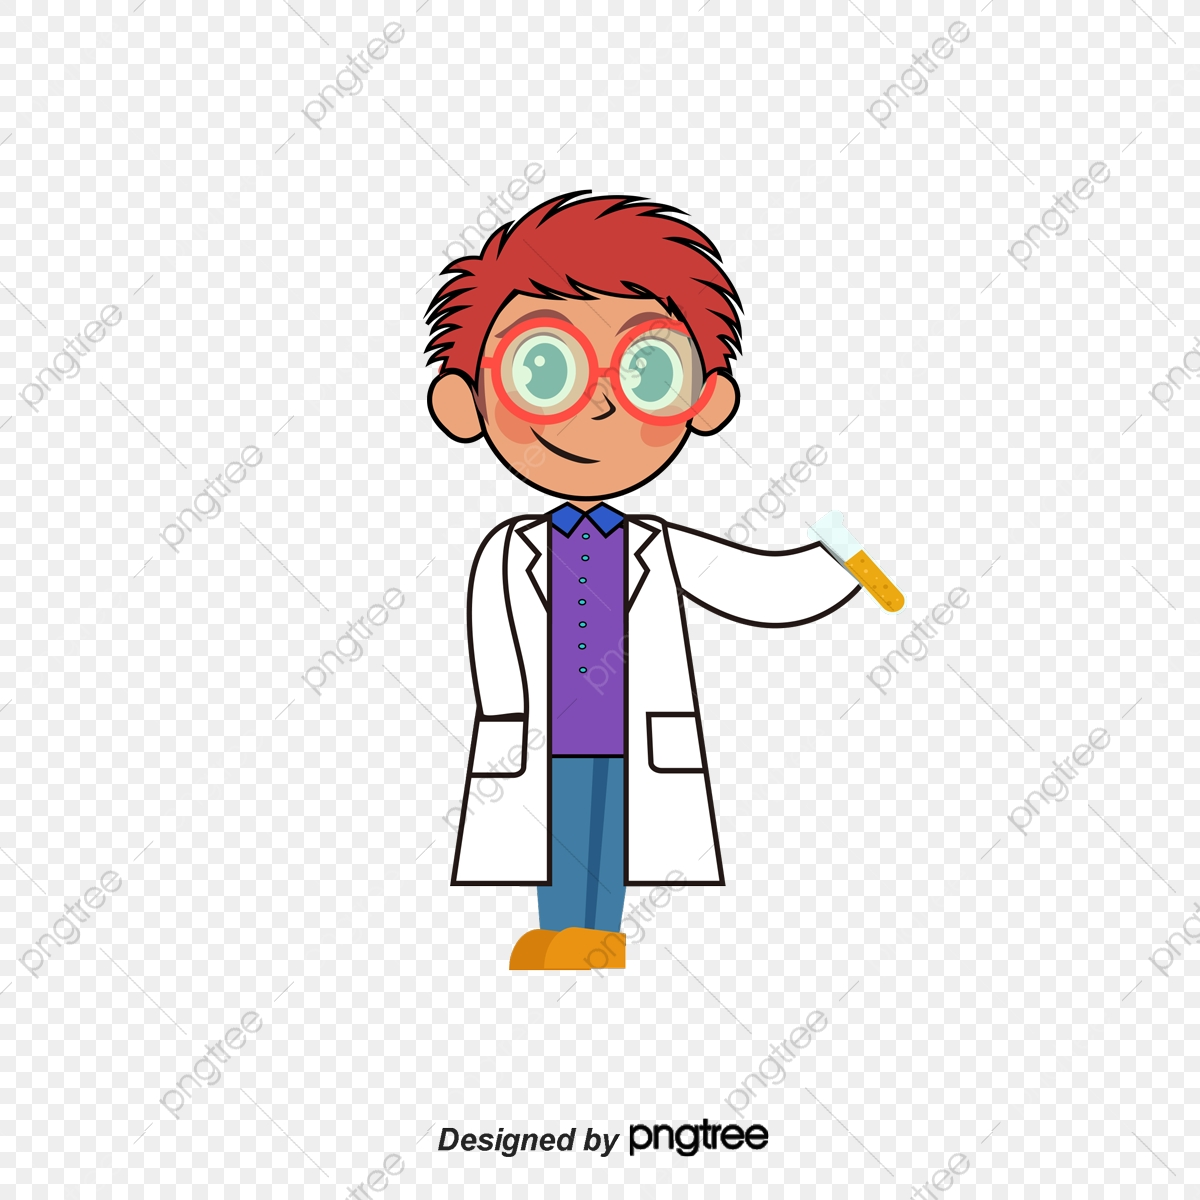 vector little scientist child hand painted science png transparent clipart image and psd file for free download https pngtree com freepng vector little scientist 1968233 html